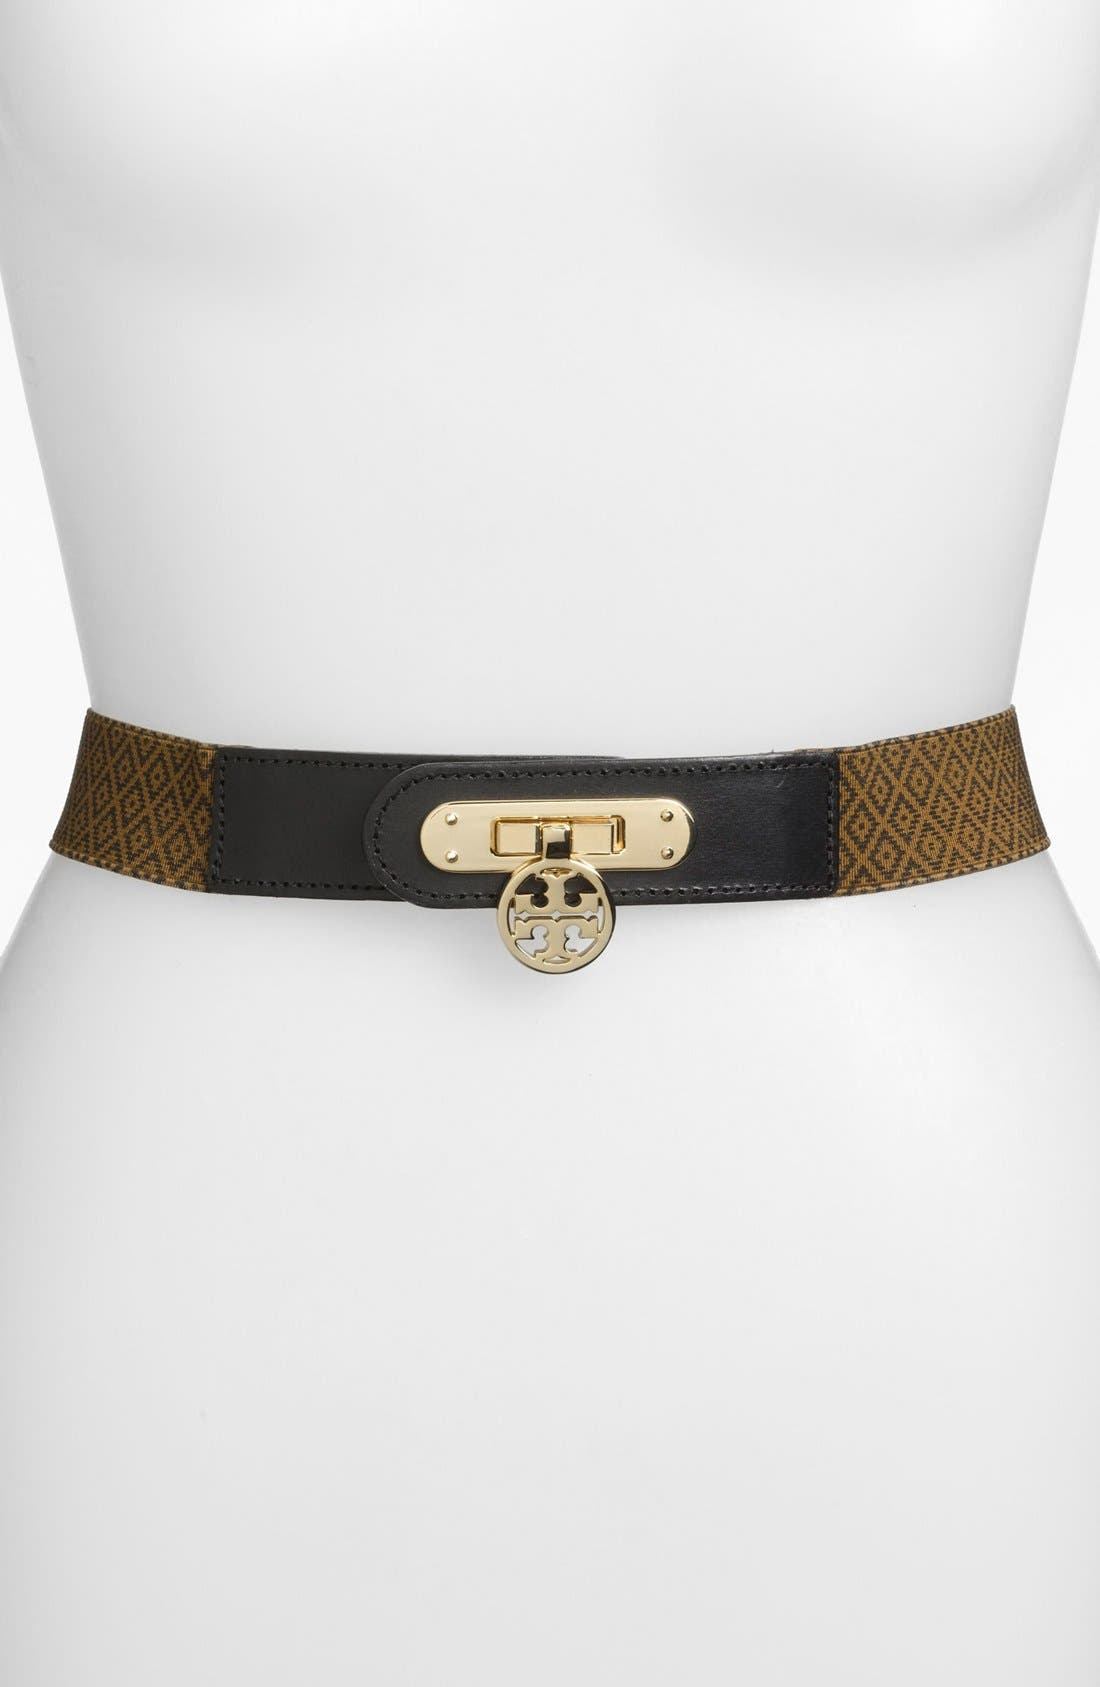 Alternate Image 1 Selected - Tory Burch 'Daria' Printed Stretch Belt